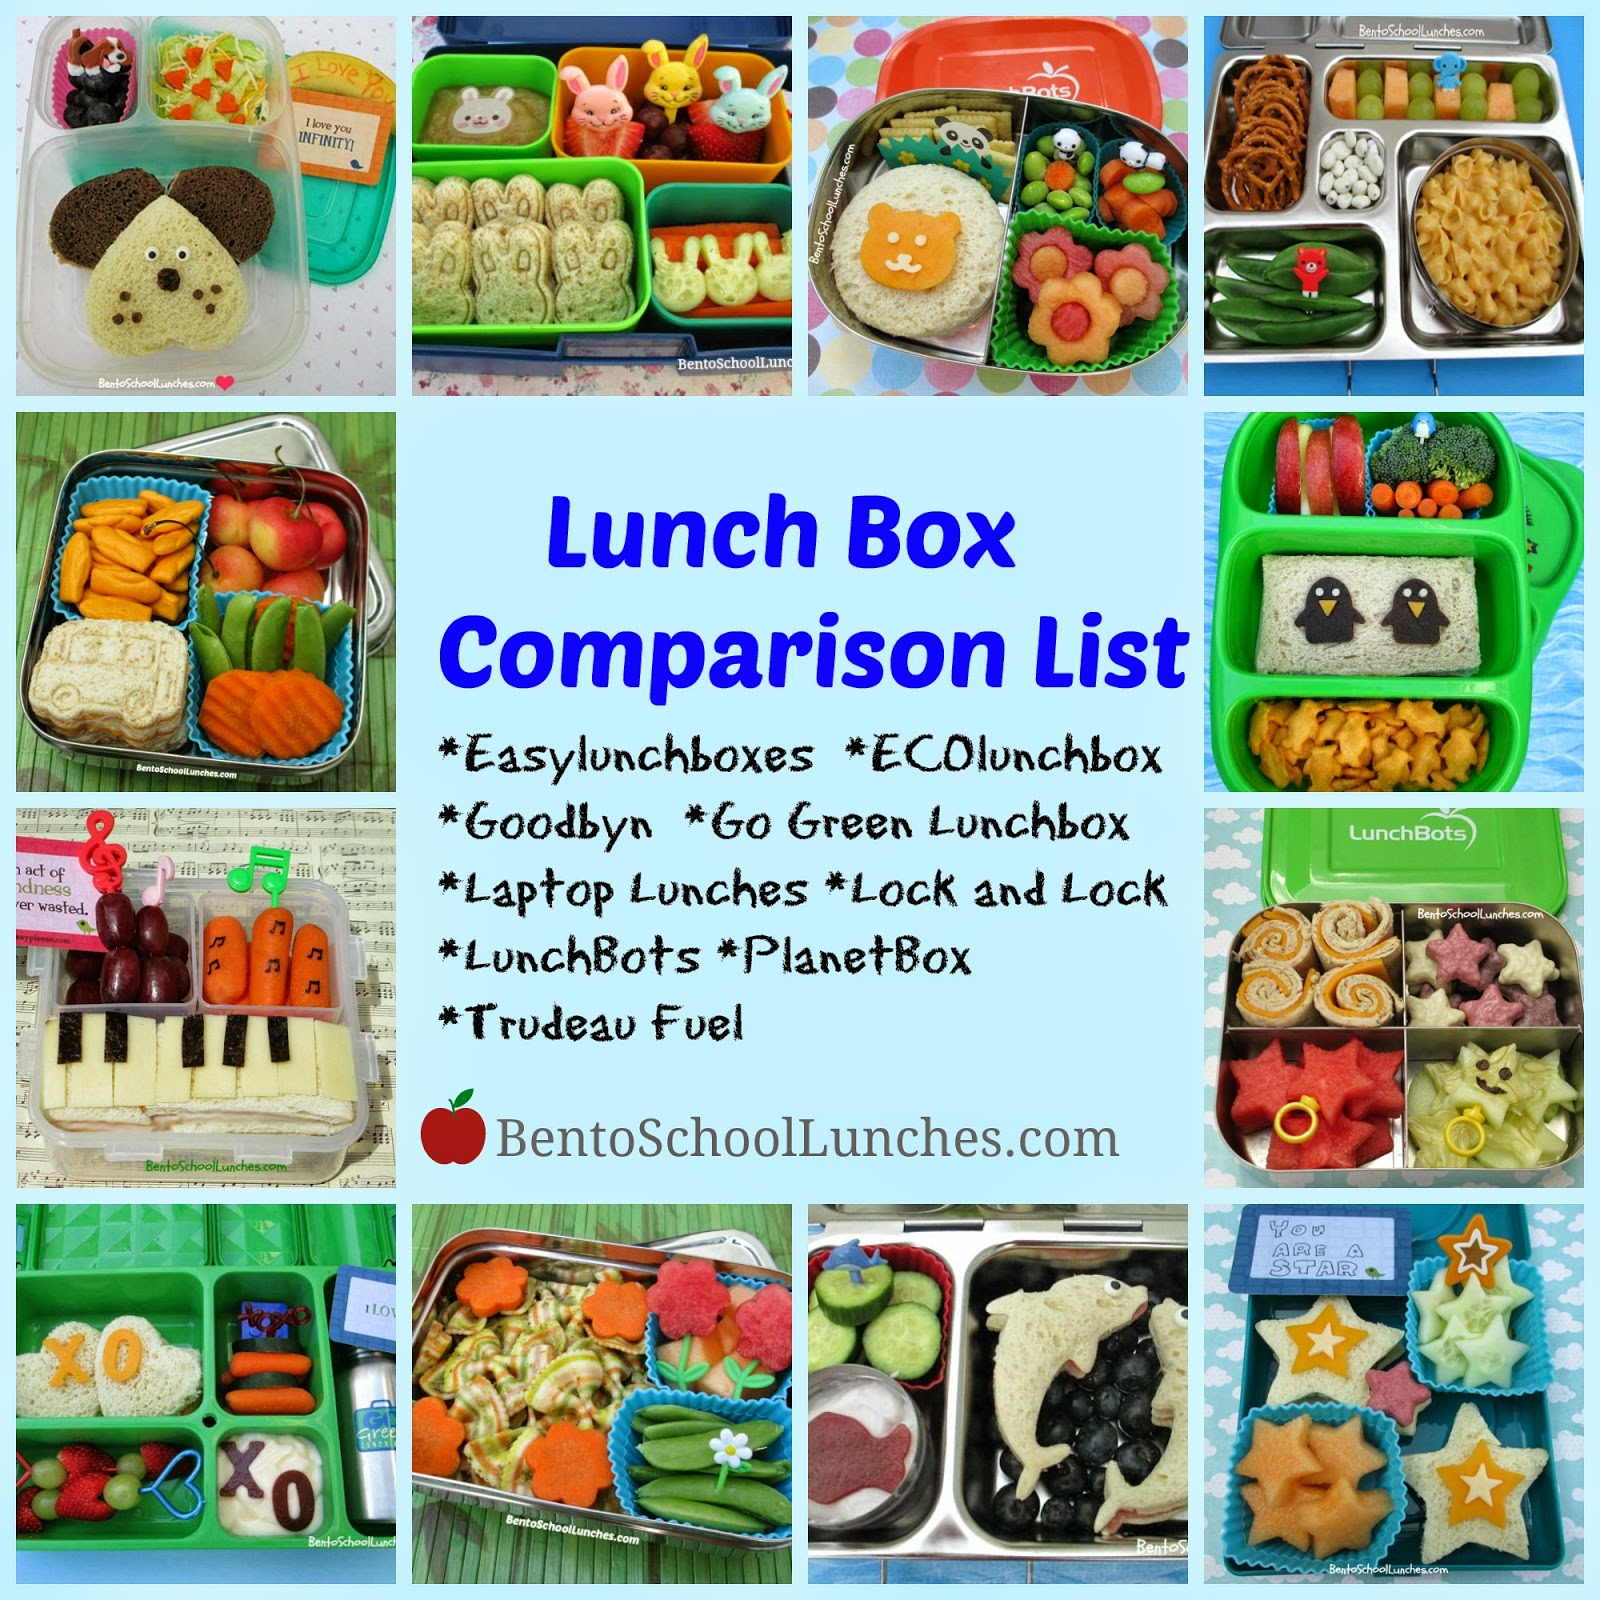 bento school lunches lunch box comparison list. Black Bedroom Furniture Sets. Home Design Ideas